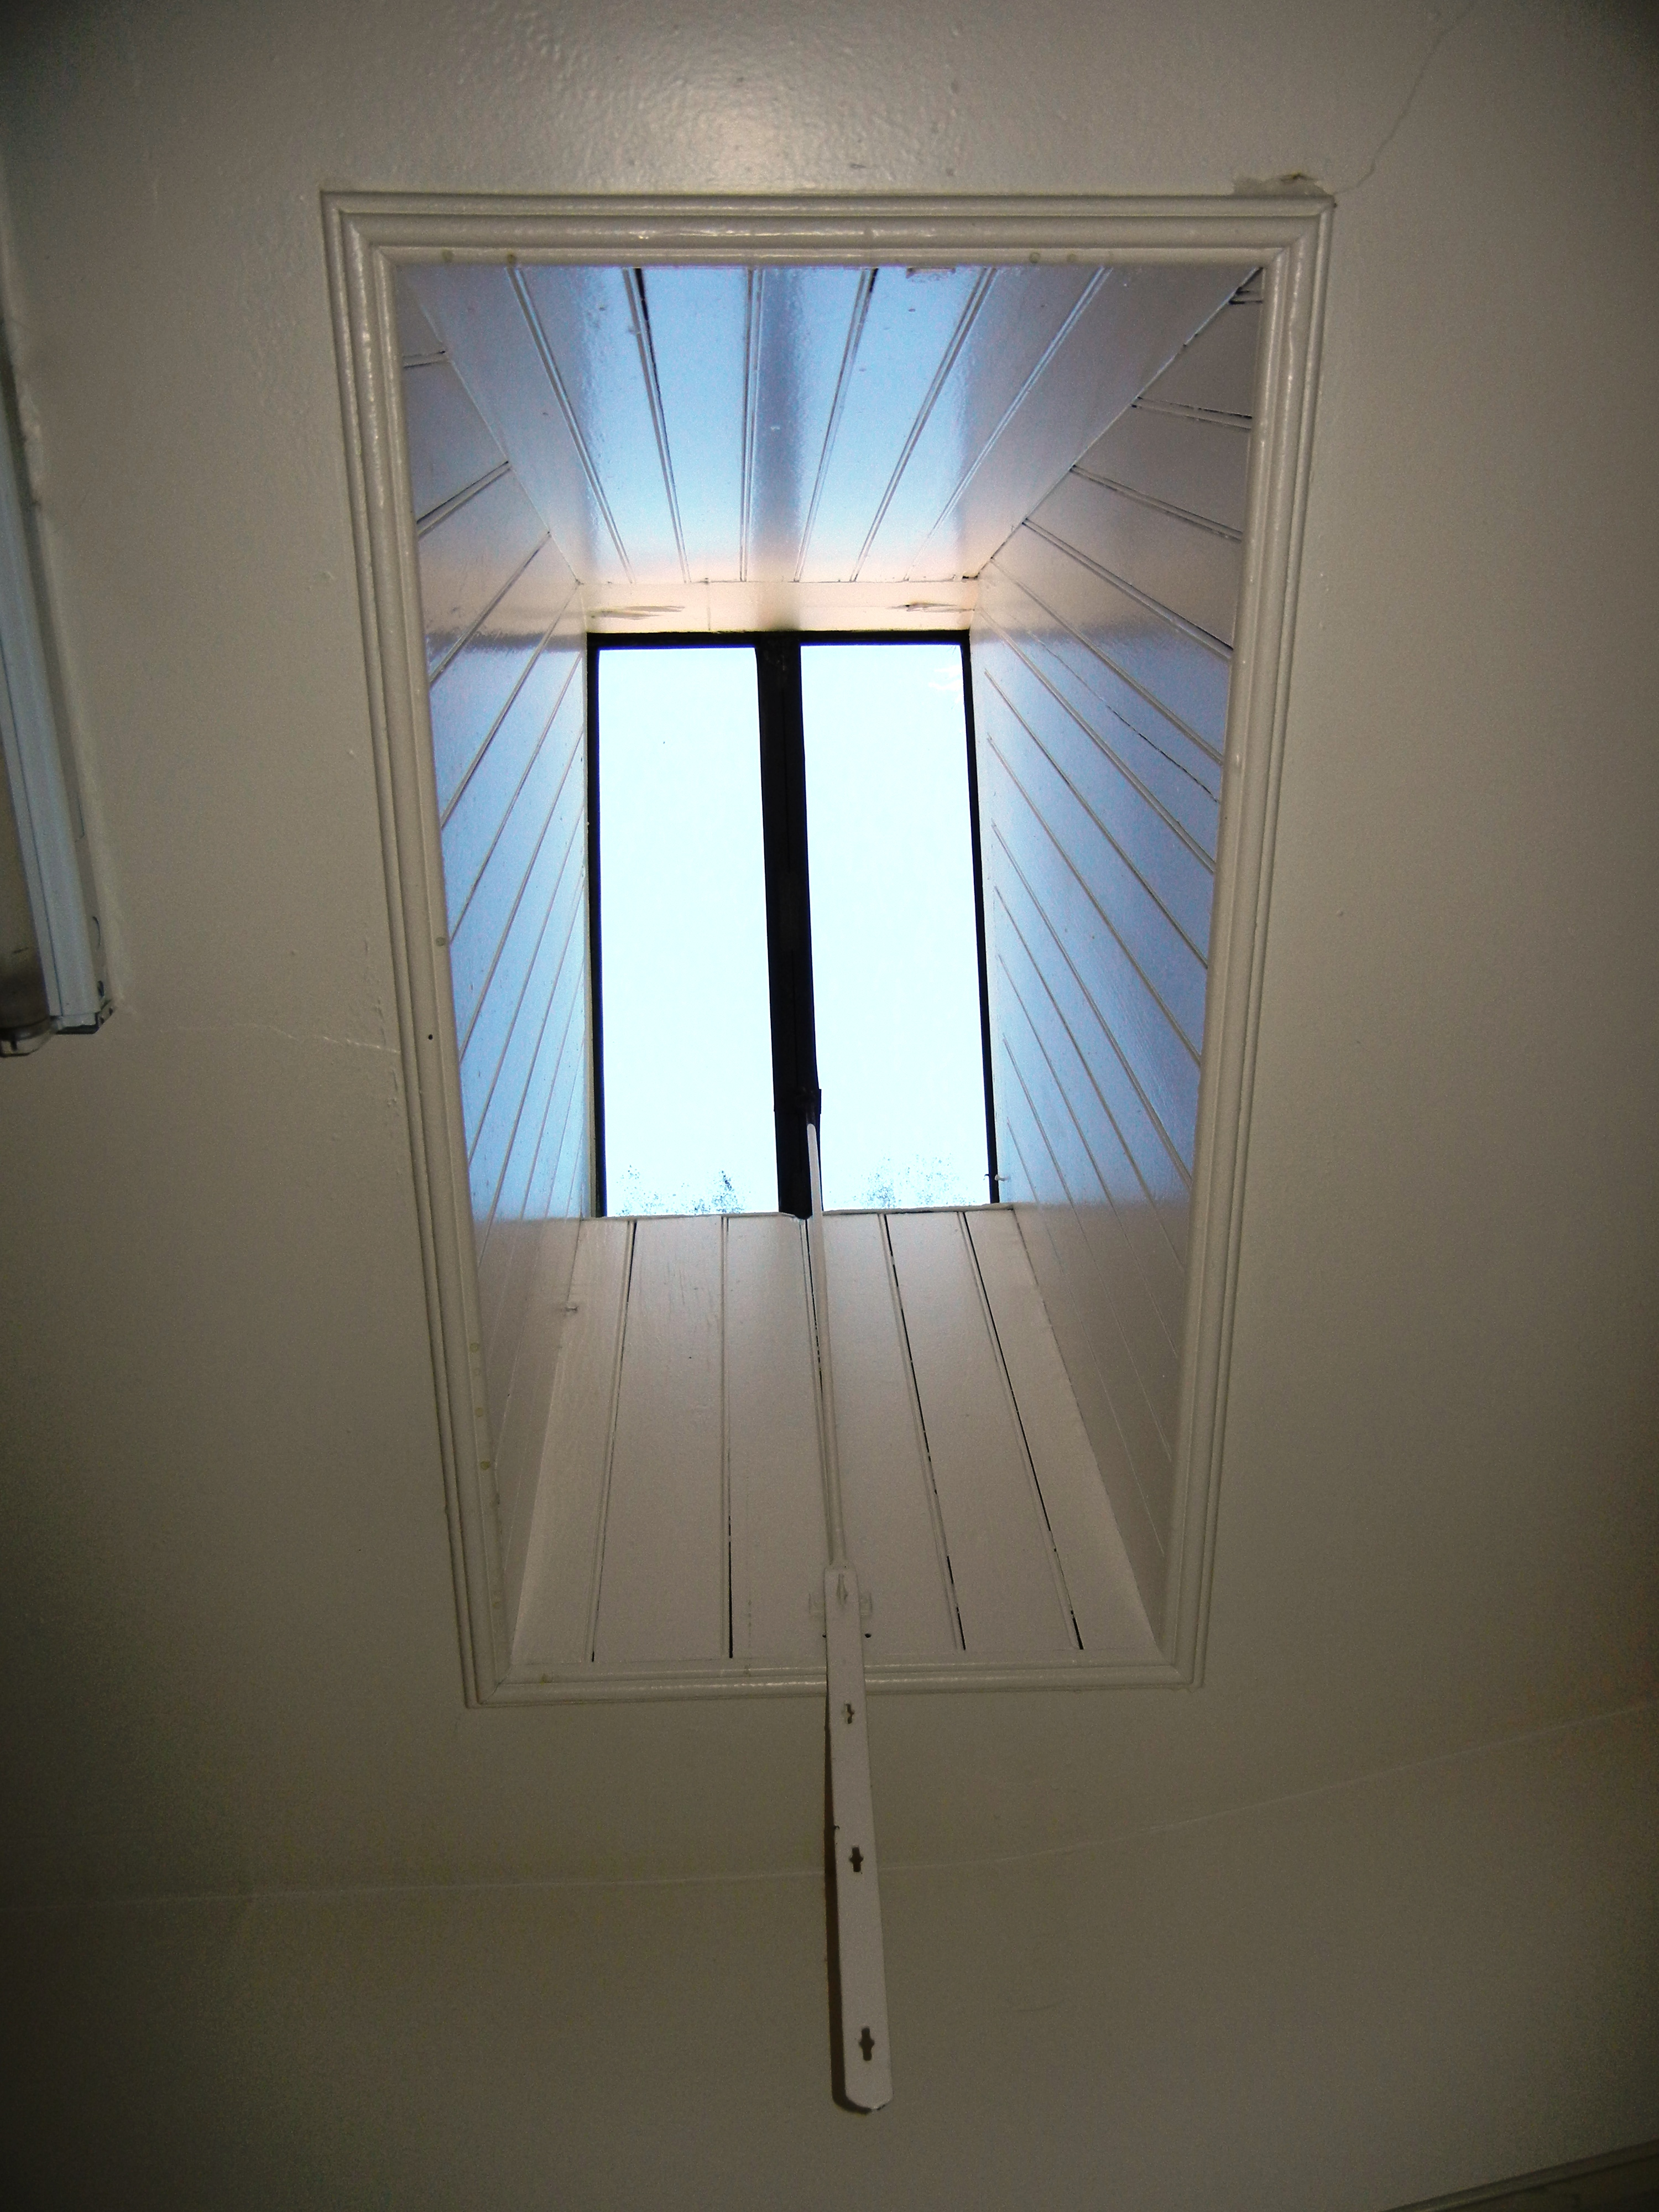 Both Windows Are Attached To And Can Be Opened By A Metal Rod And A Rope  (though They Seldom Are As Birds Inevitably Fly In And Around The House).